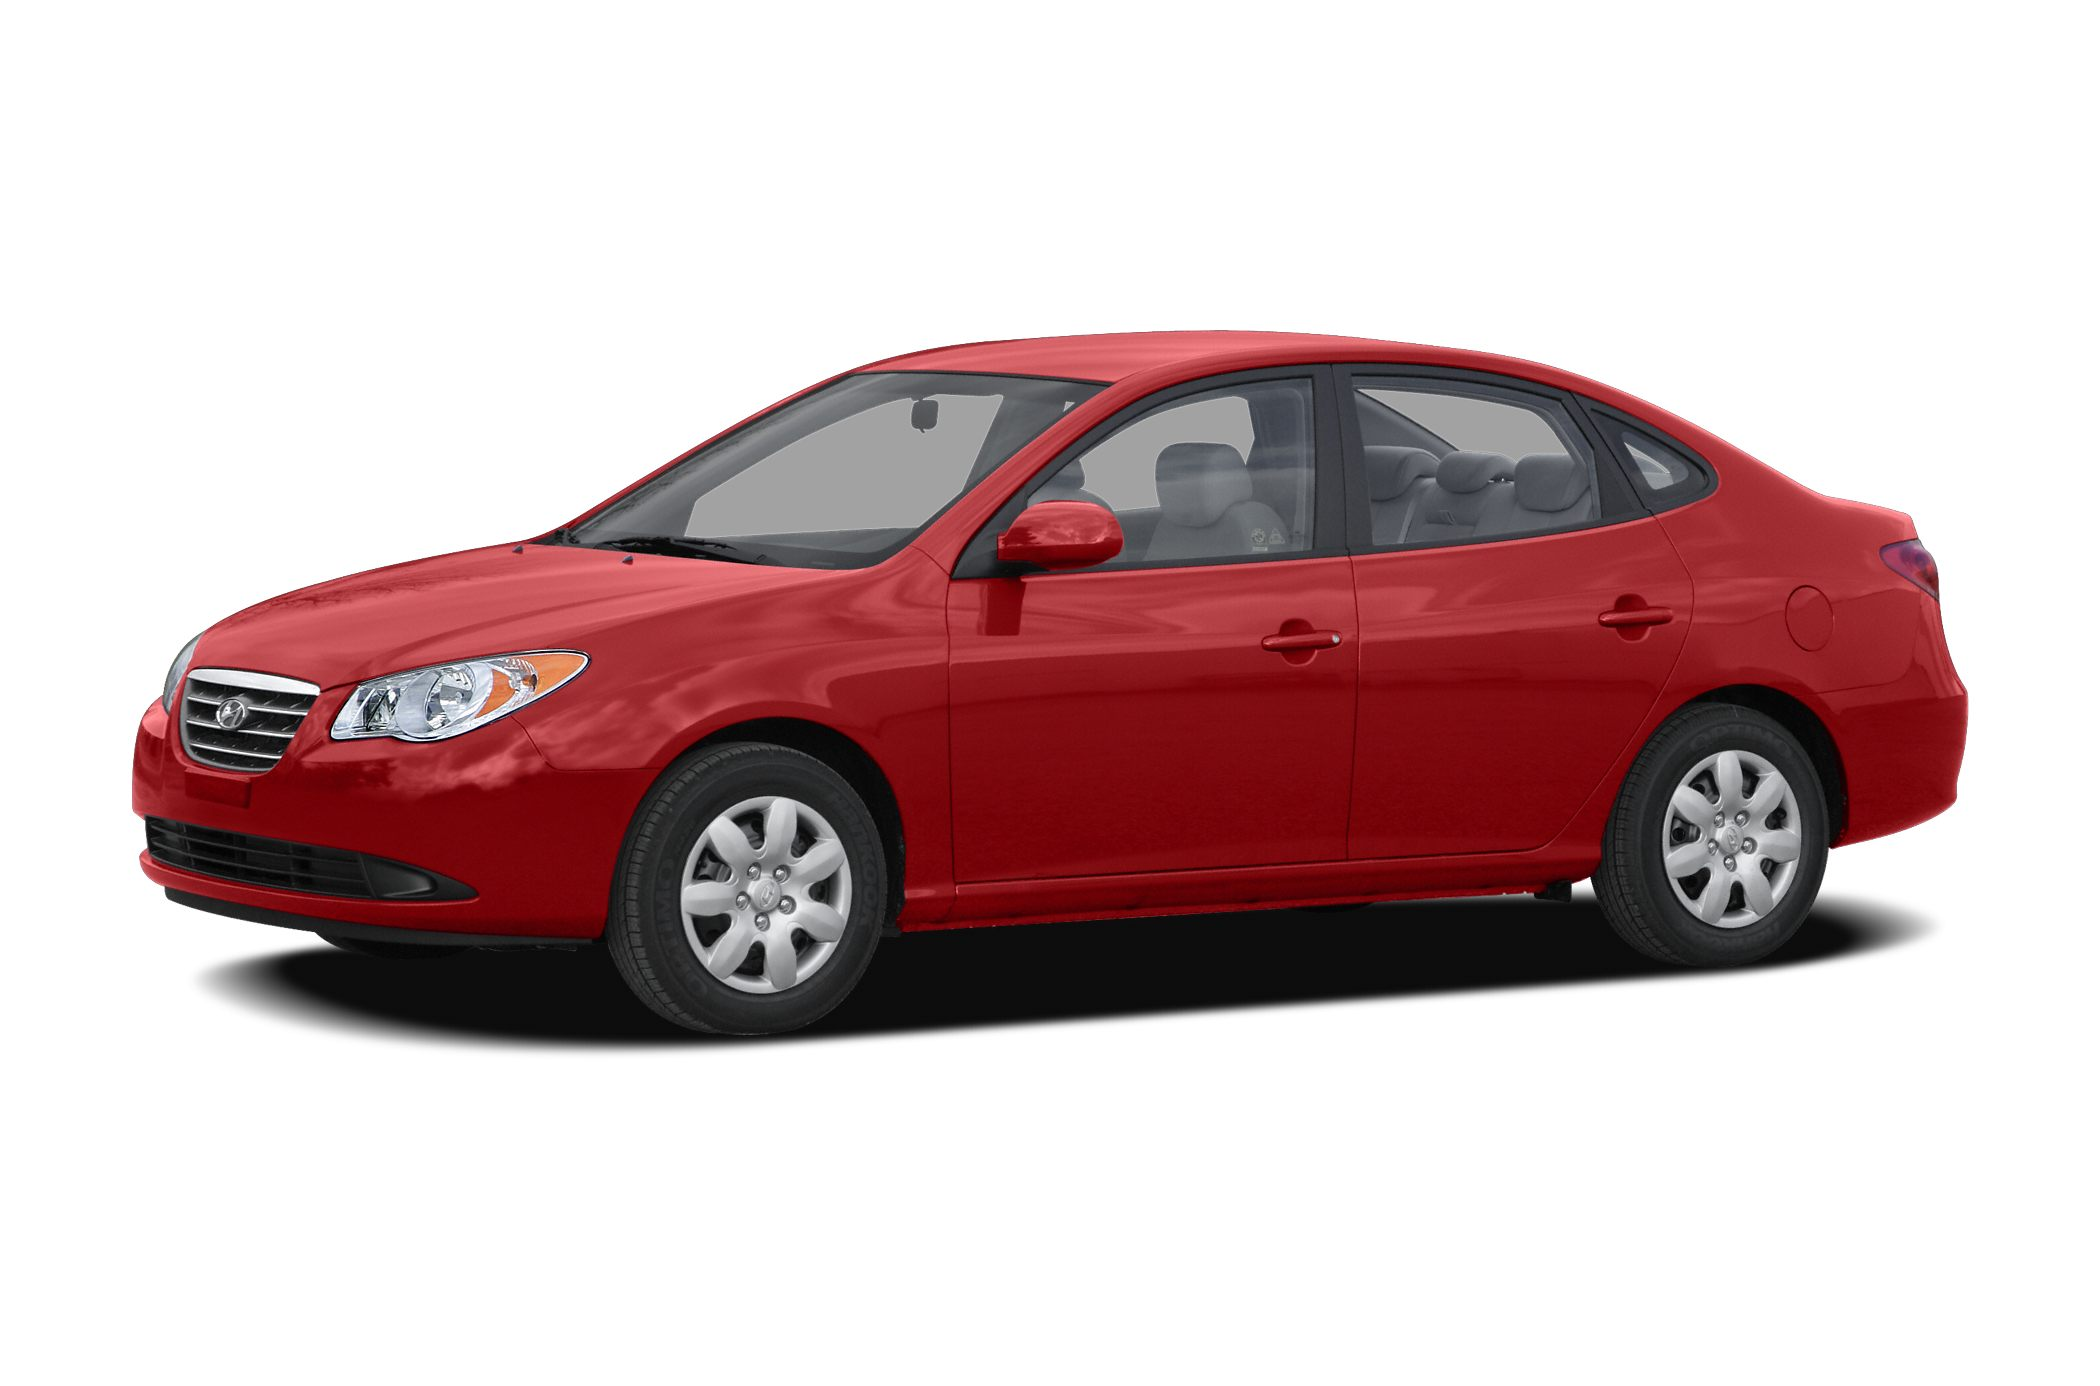 2008 Hyundai Elantra Reviews Specs And Prices Cars Com